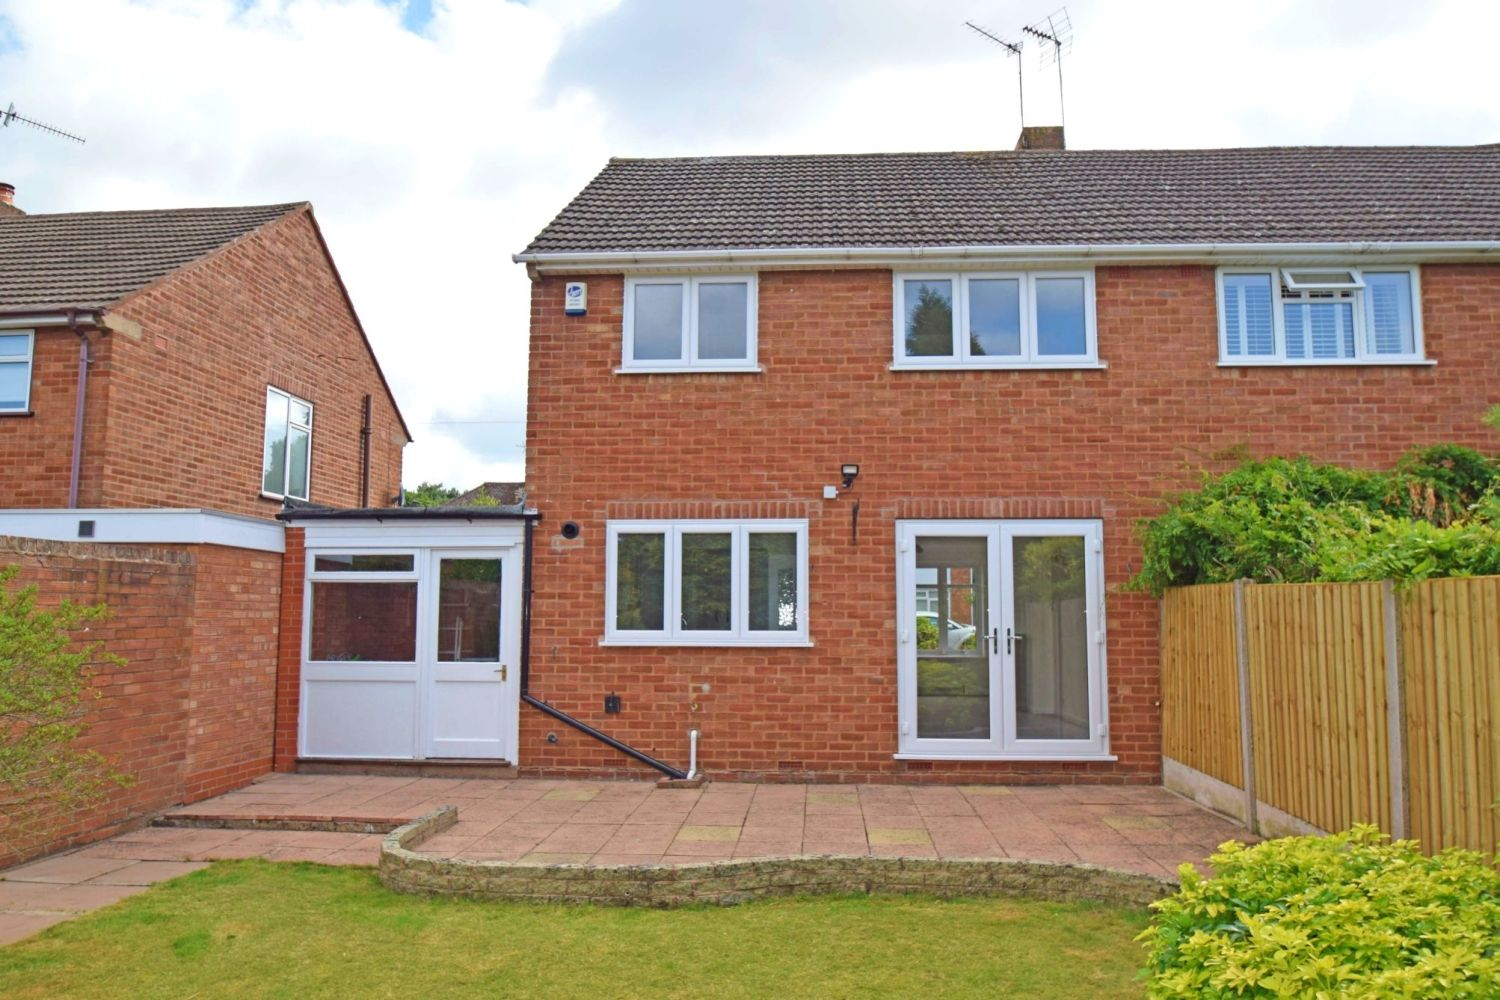 3 bed semi-detached for sale in Beachcroft Road, Wall Heath 12